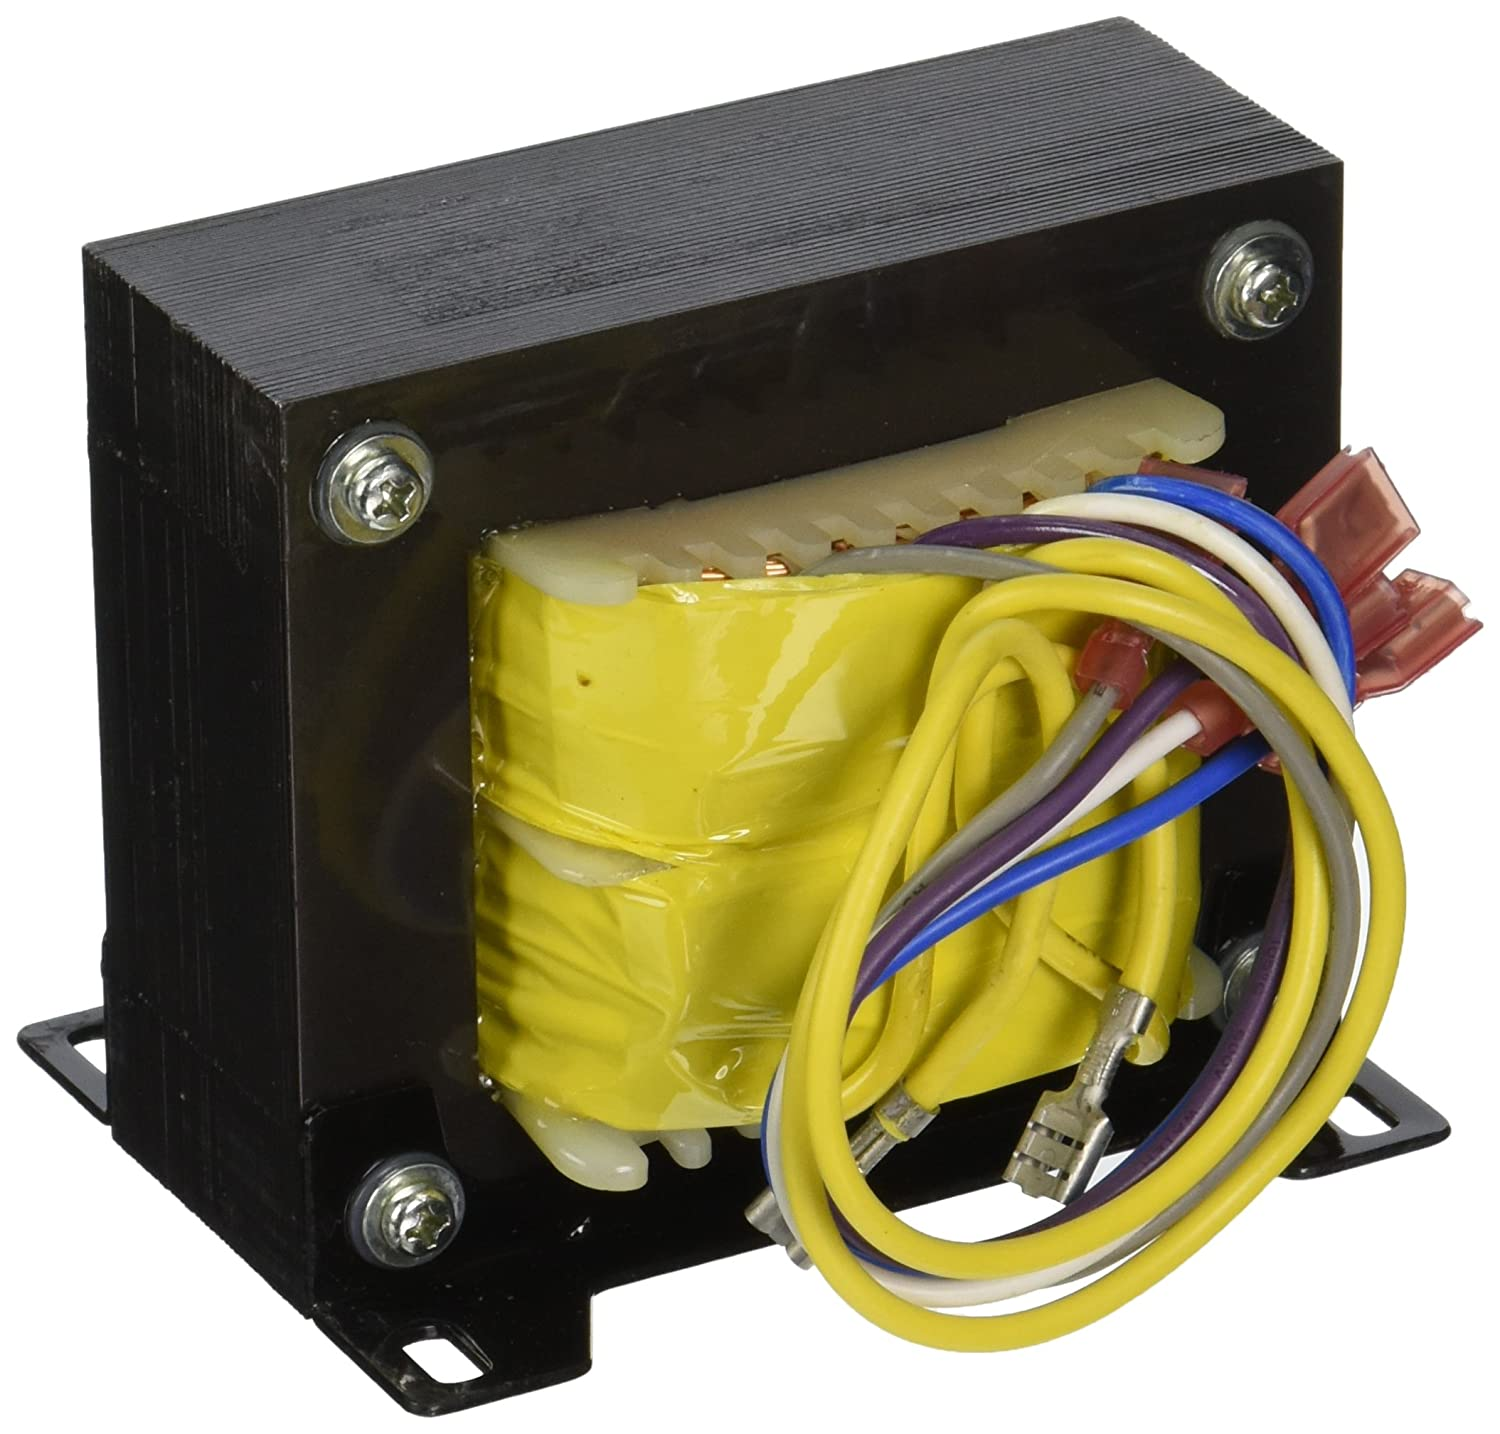 81FUHn2L34L._SL1500_ amazon com hayward glx xfmr transformer replacement for select Goldline Pool Controls at reclaimingppi.co